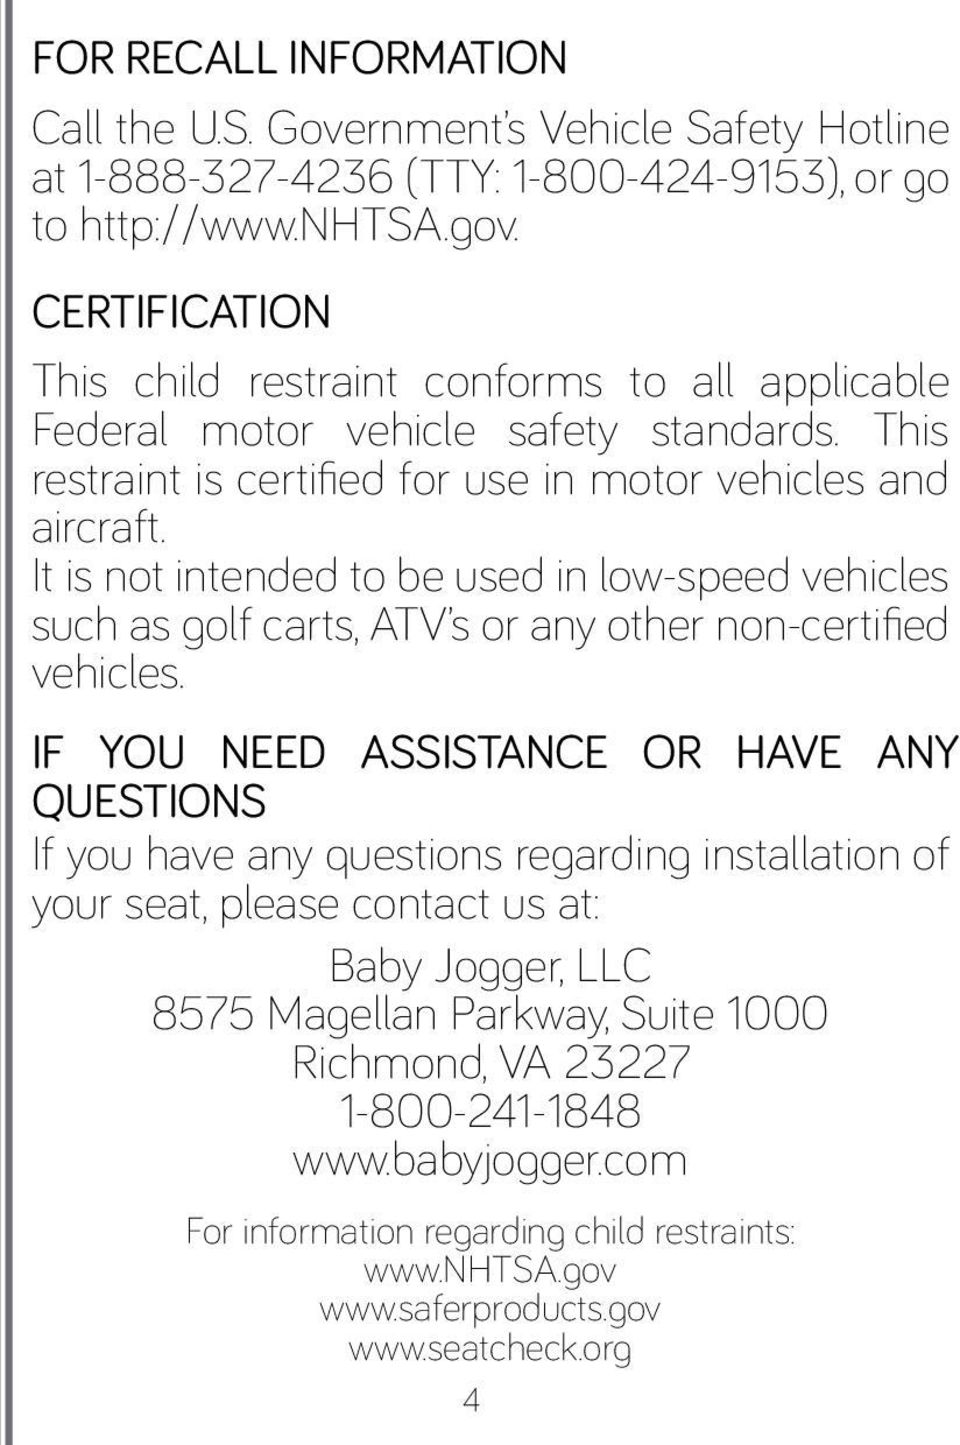 It is not intended to be used in low-speed vehicles such as golf carts, ATV s or any other non-certified vehicles.